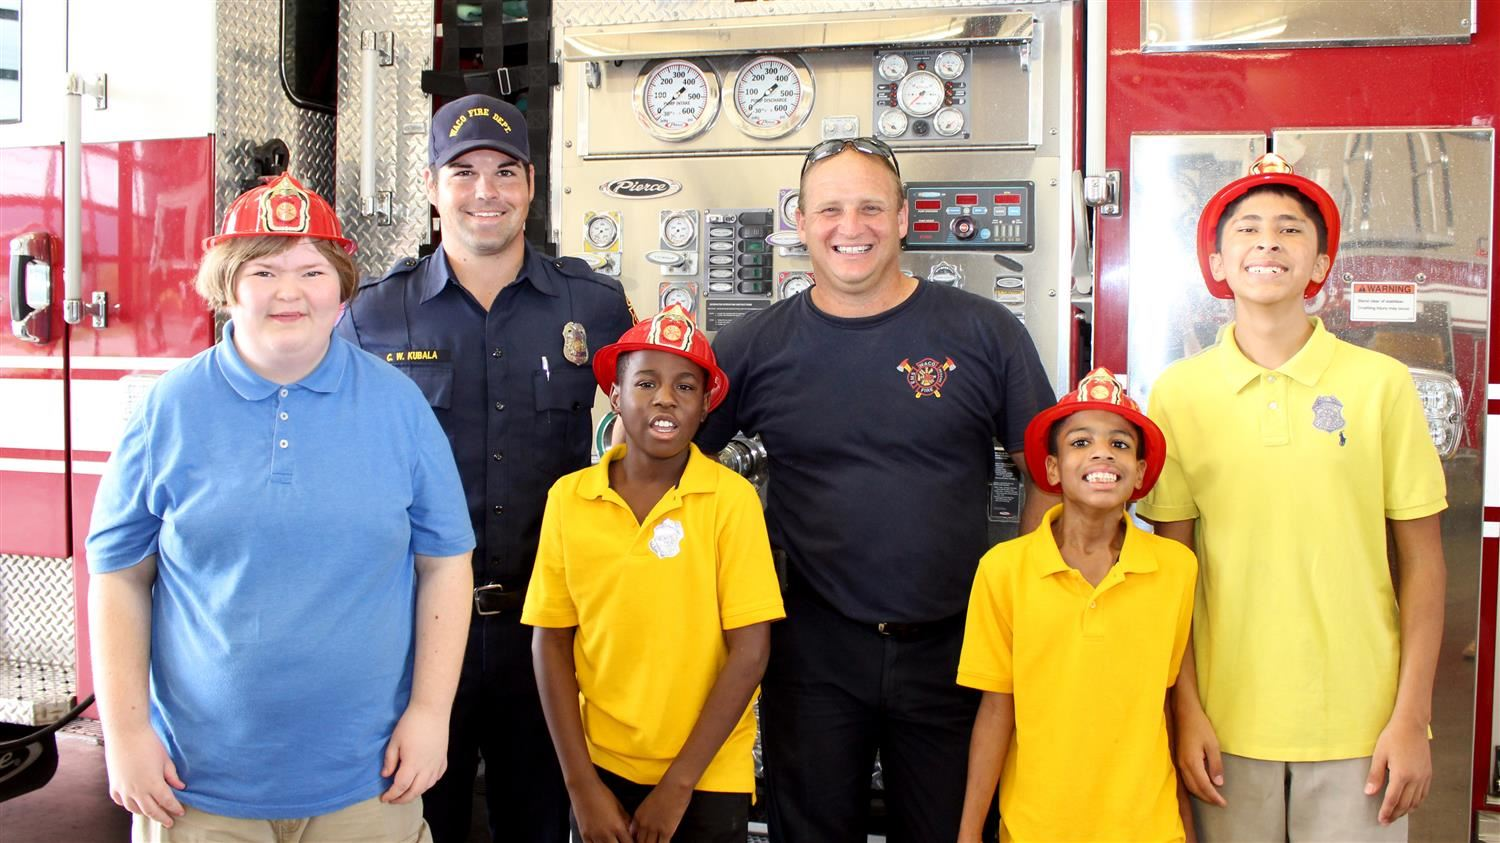 Firefighters with students